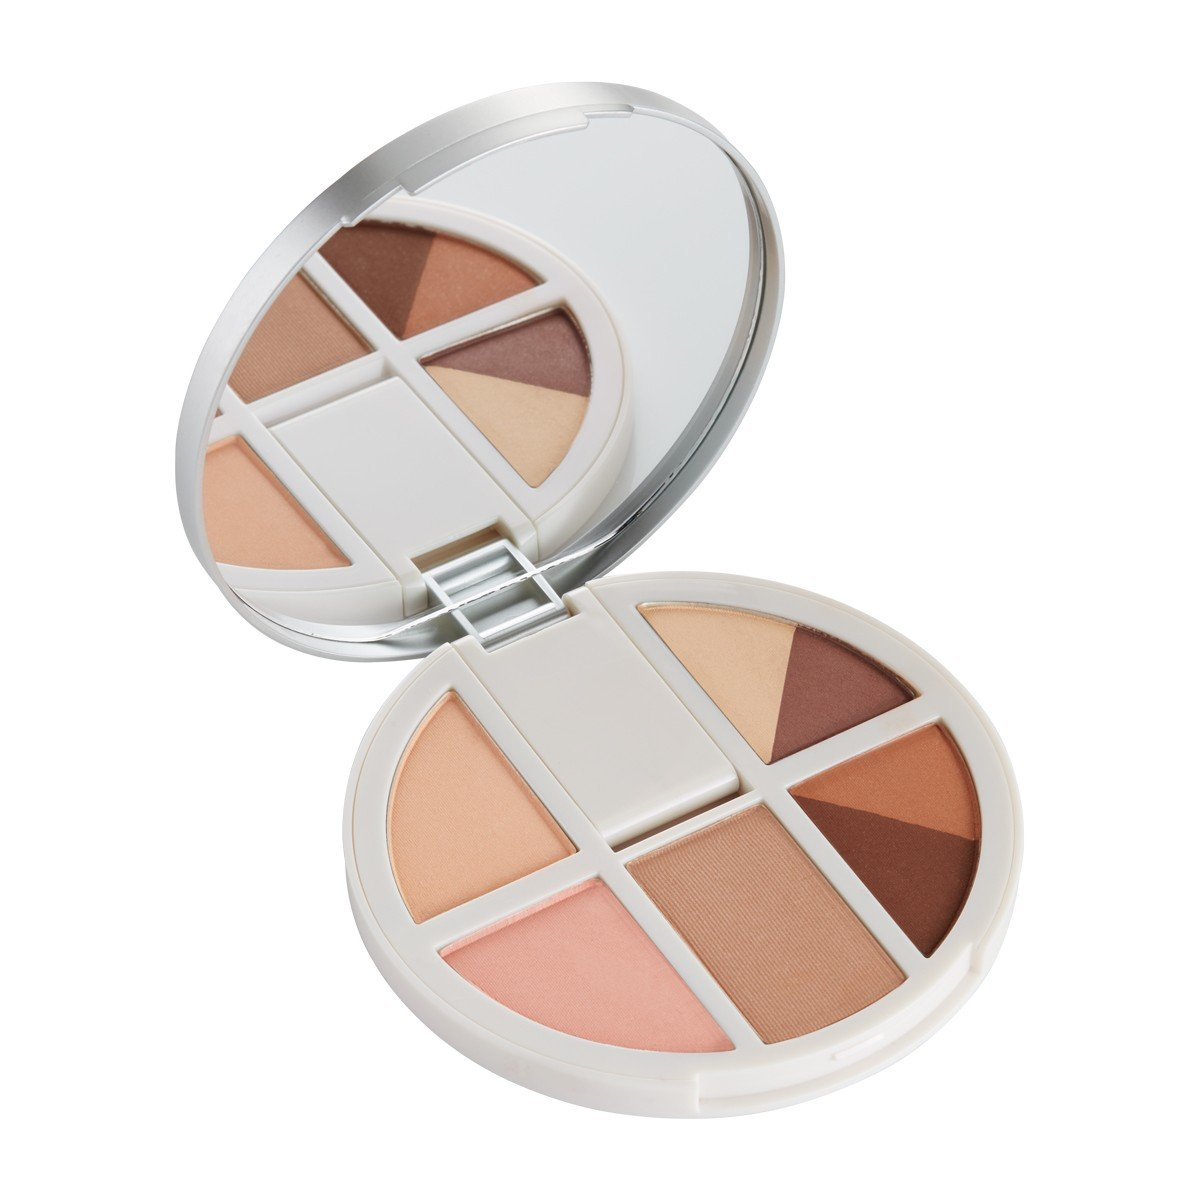 Review Pr Cosmetics Vanity Palettes Eyes Cheeks Purcosmetics Inez Color Contour Plus Loose Eyeshadow Powder Sparkling Silver Dream Chaser Has Light Golden Colors That Look Very Pretty On Warm Toned Gals It Is My Favorite Of The Two Because Contains More